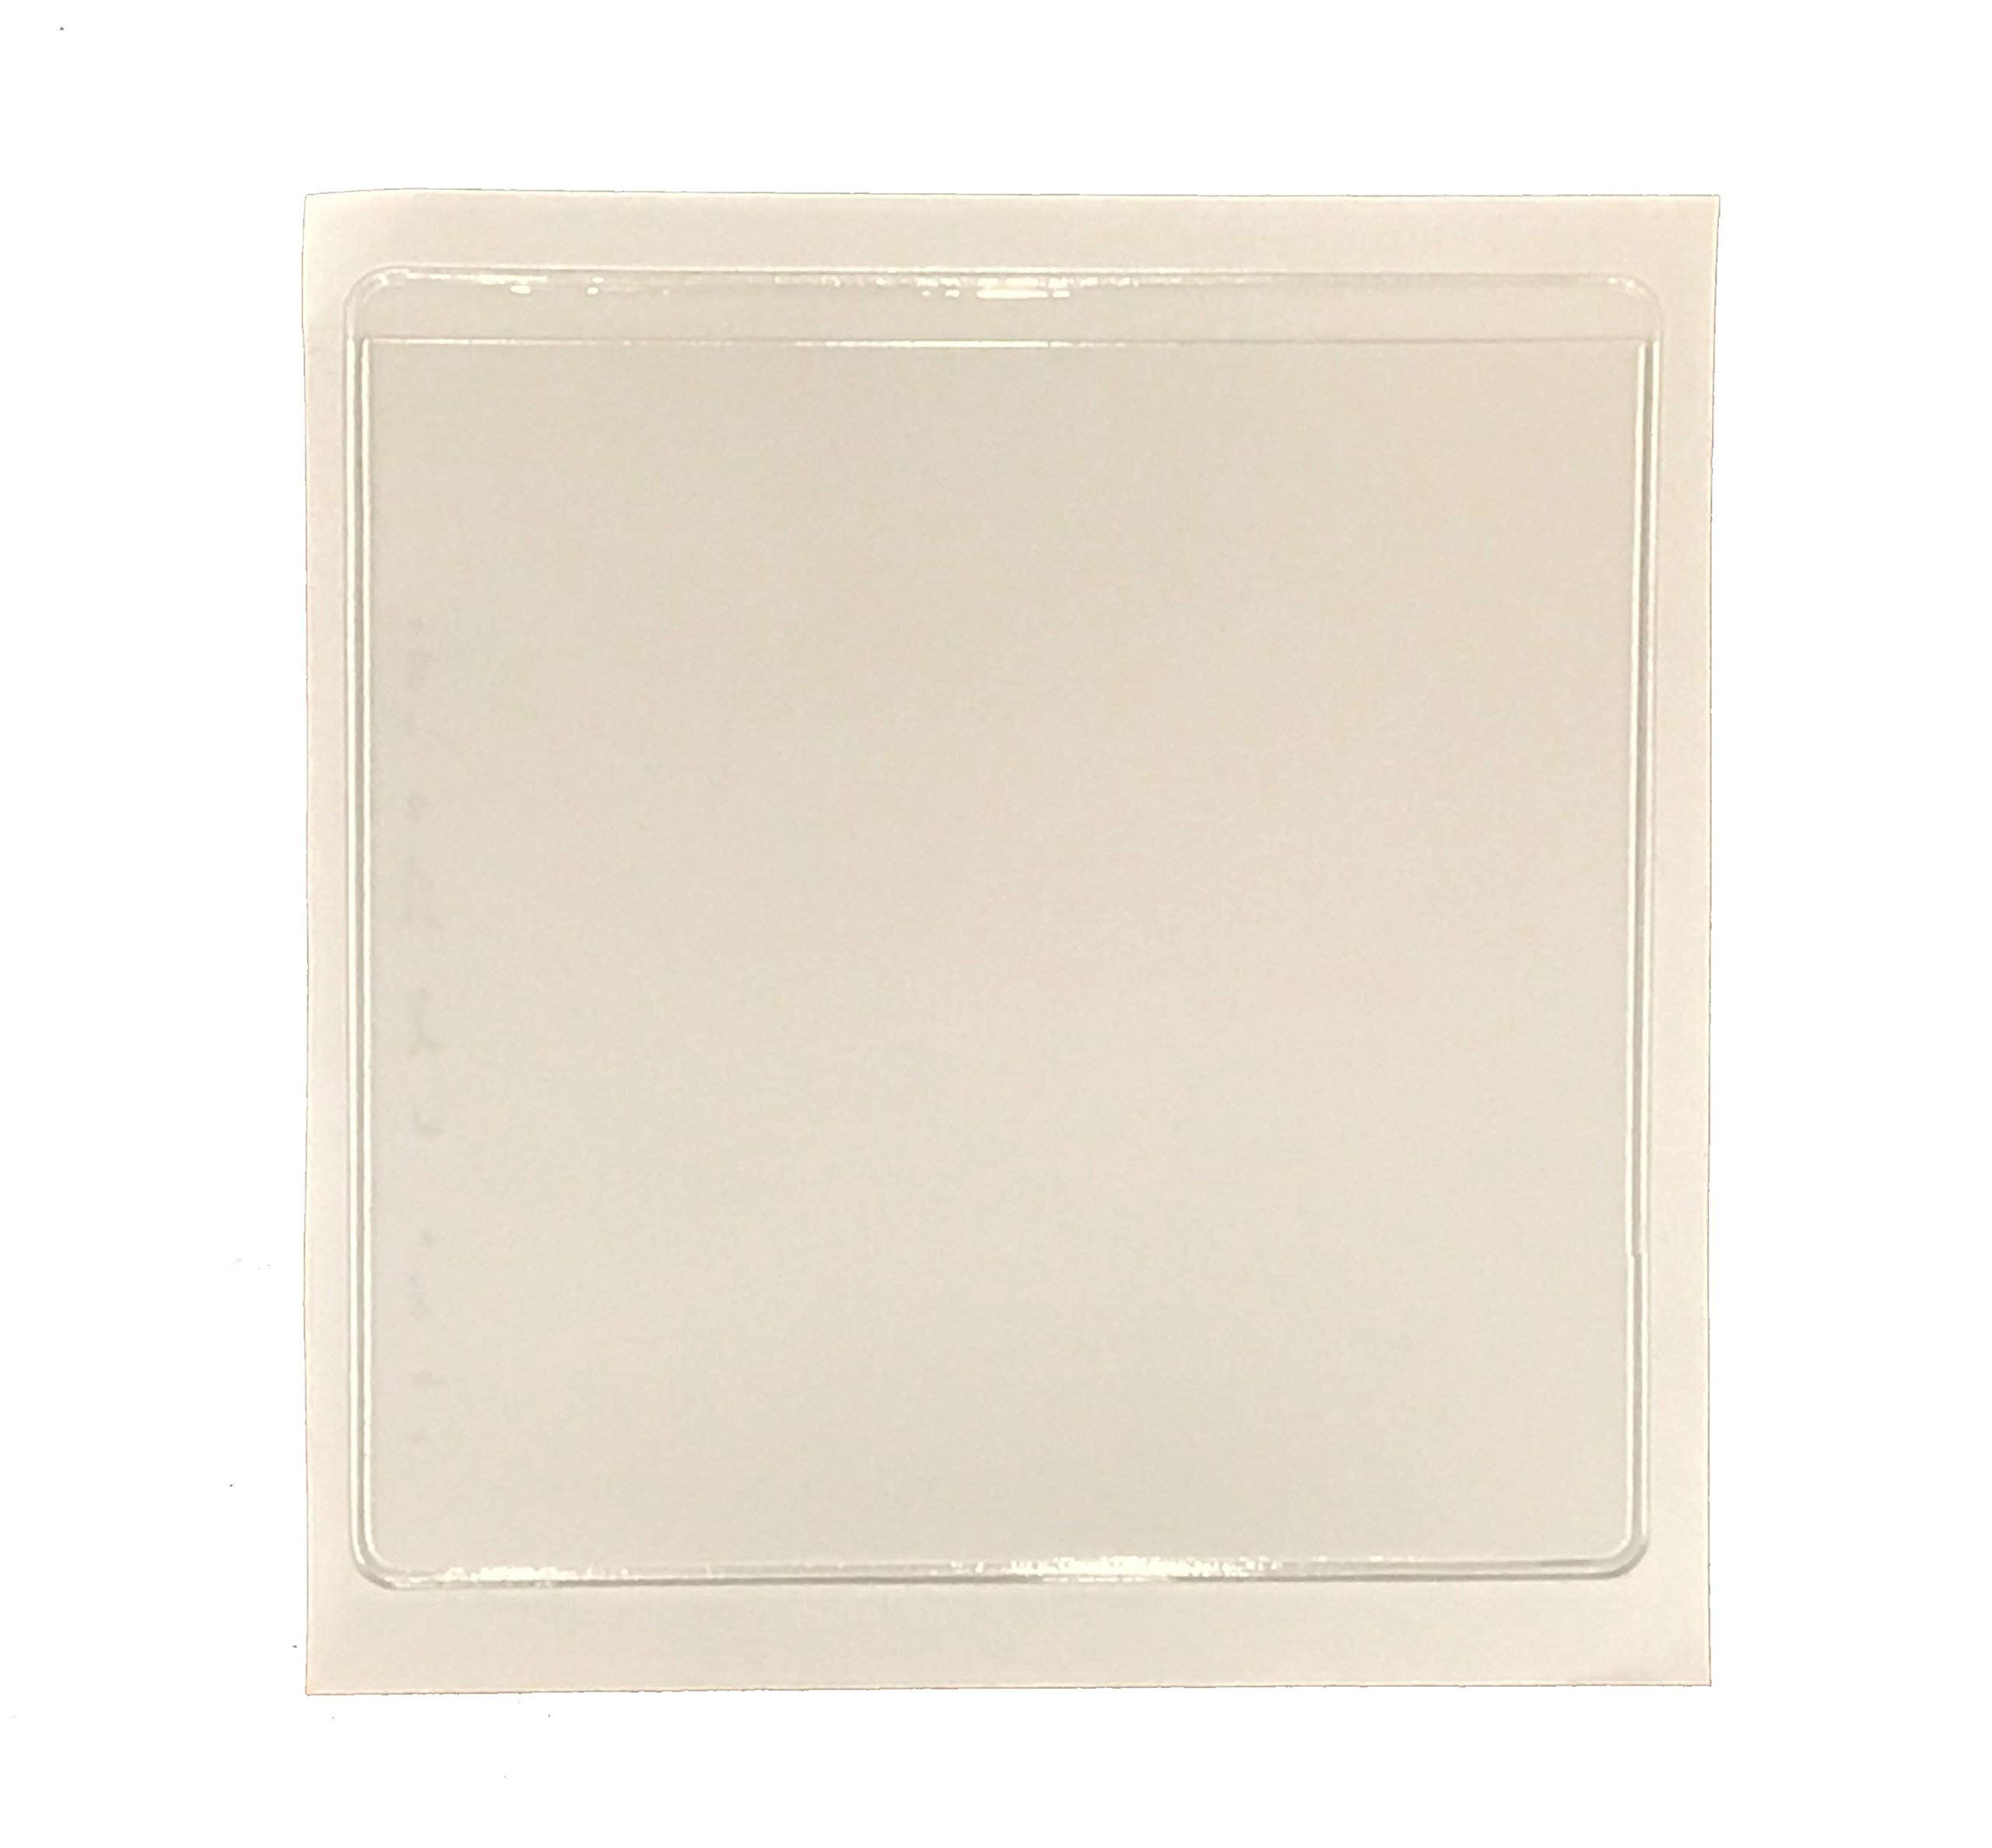 Adhesive Square Label Pockets Holder 3.2 Mil Heavy Duty (3.5'' by 3.5'') Set of 30